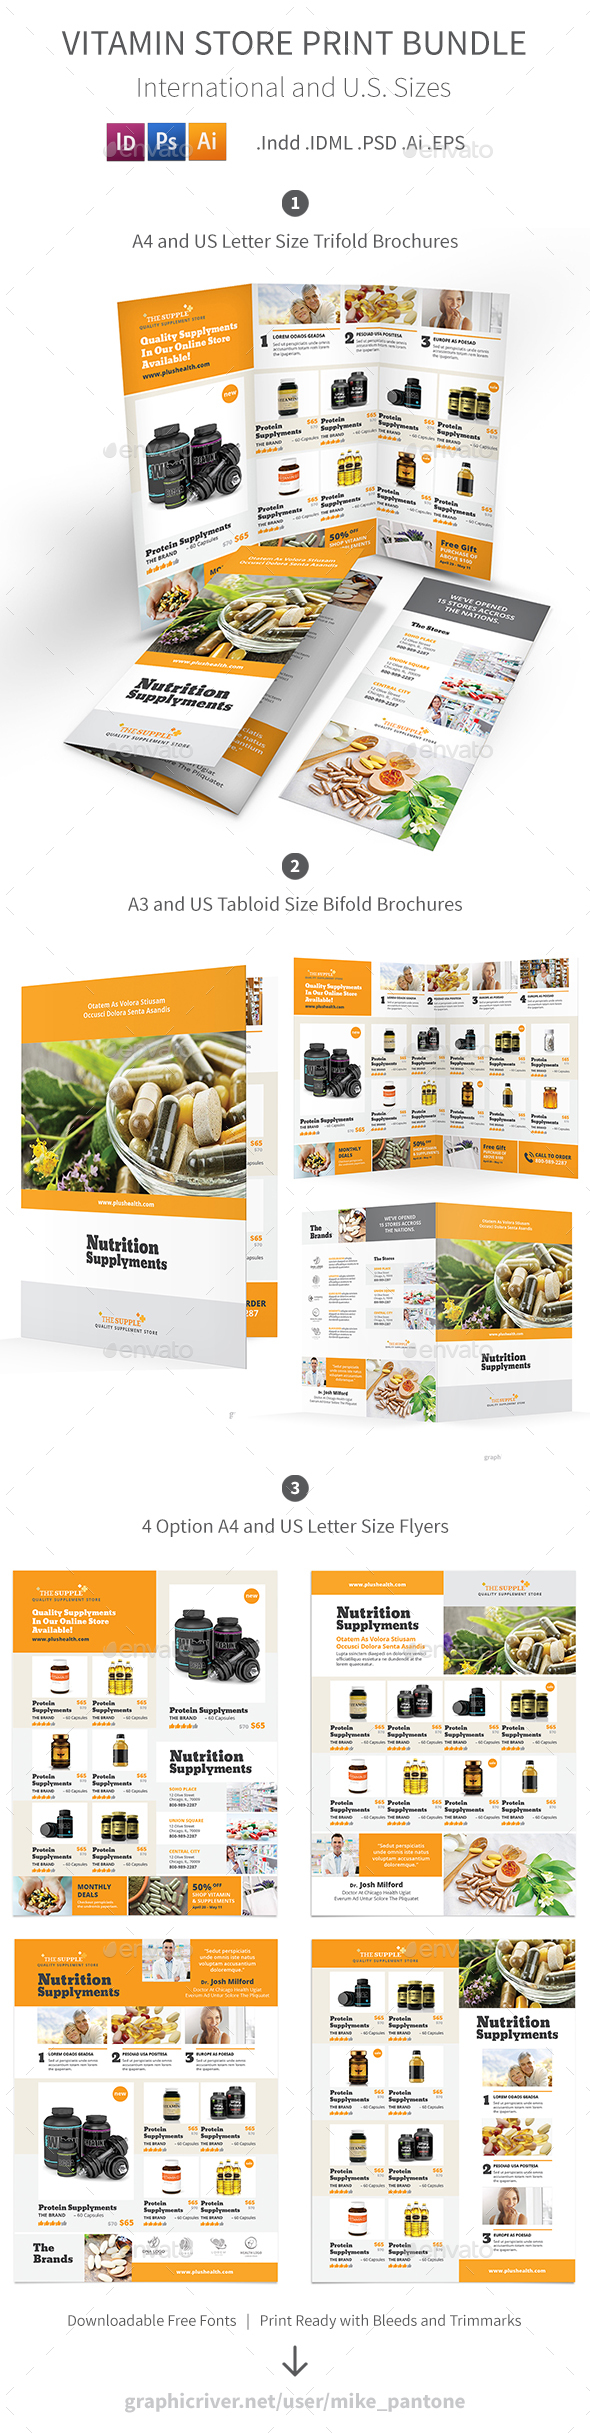 Vitamin Store Print Bundle - Informational Brochures